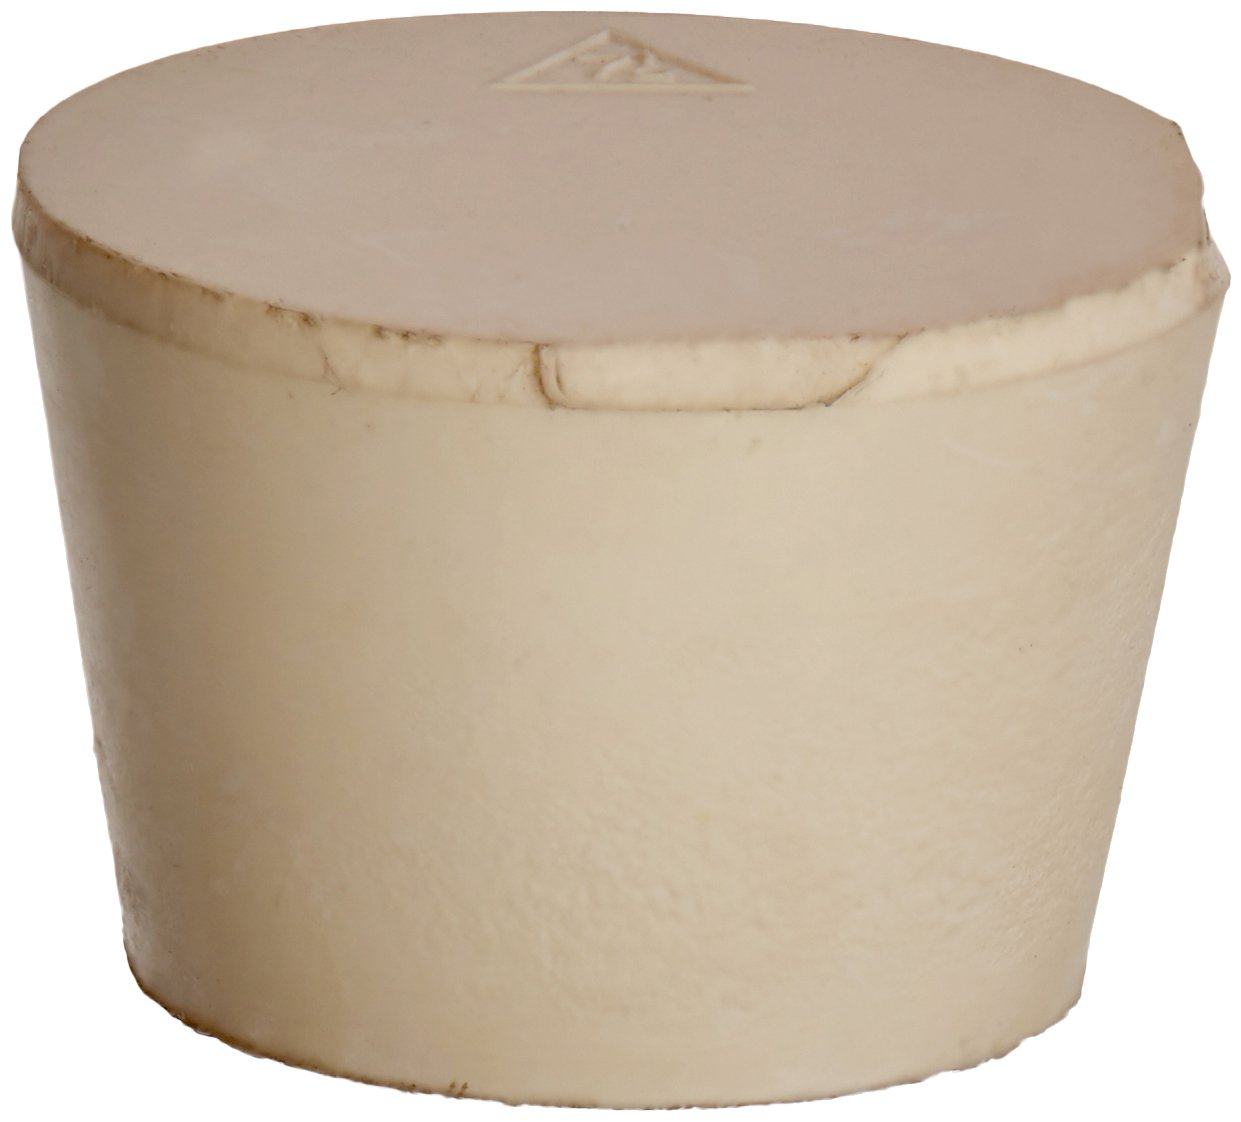 Rubber Stopper- lowest price Size 7.5- Choice Solid